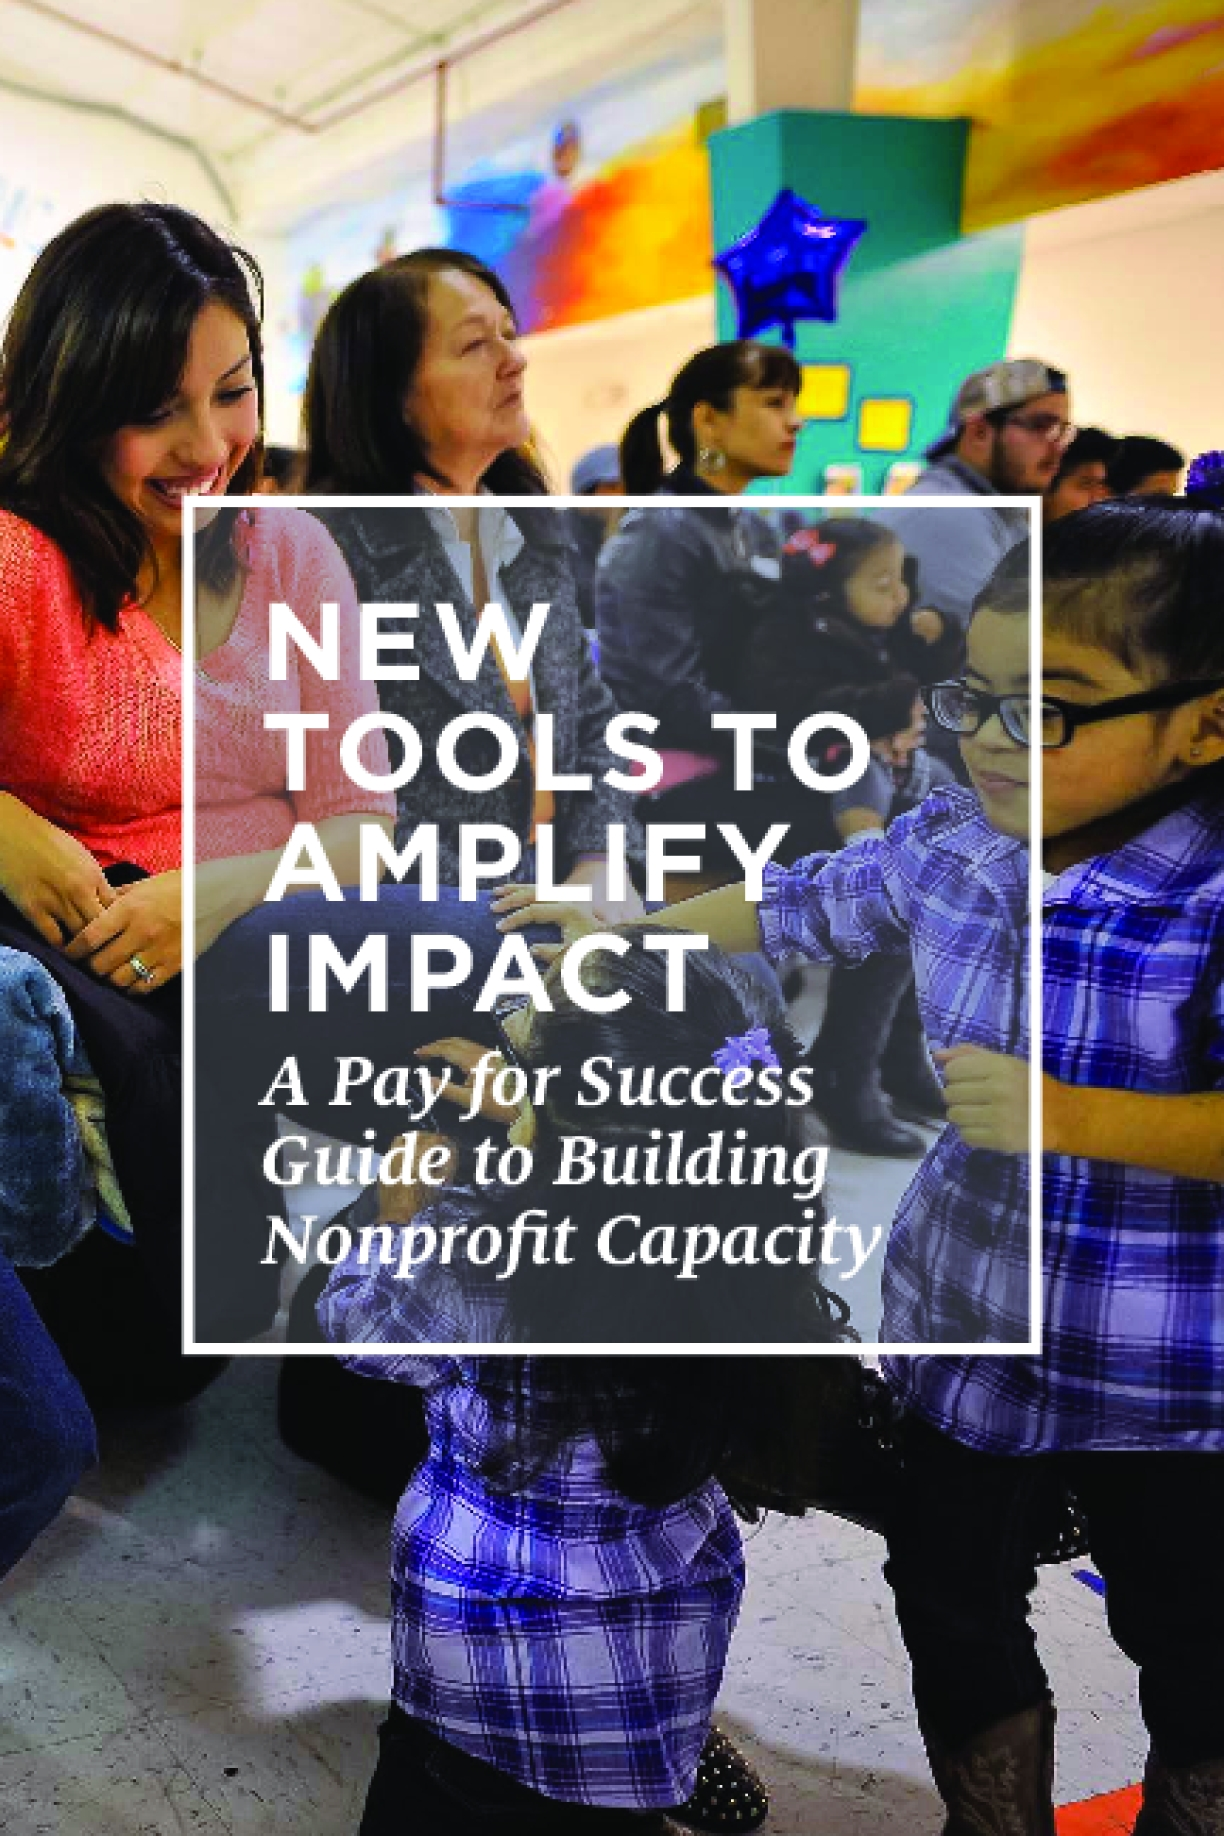 New Tools to Amplify Impact: A Pay for Success Guide to Building Nonprofit Capacity